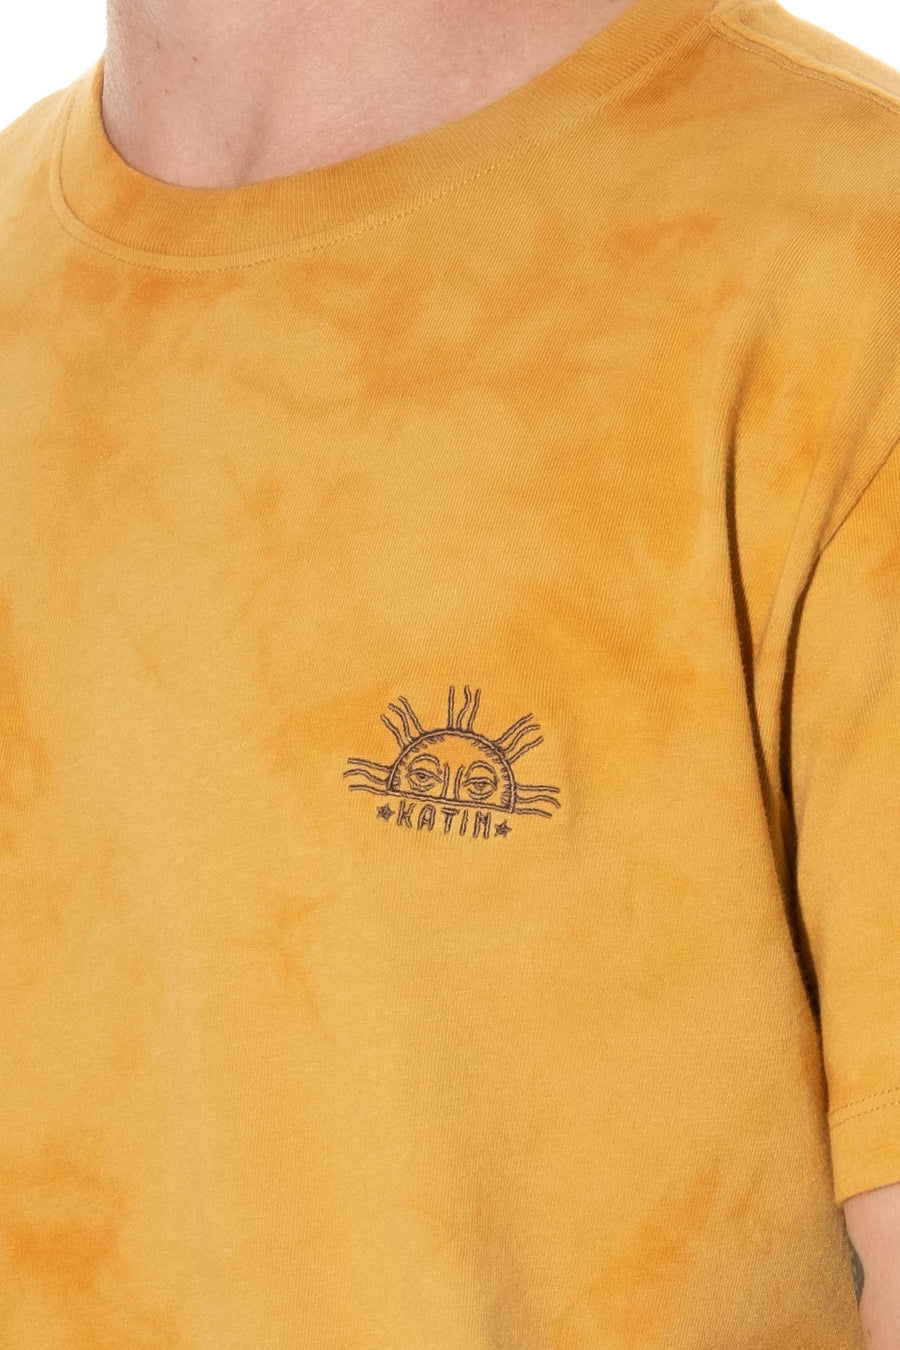 DAY BREAK TEE